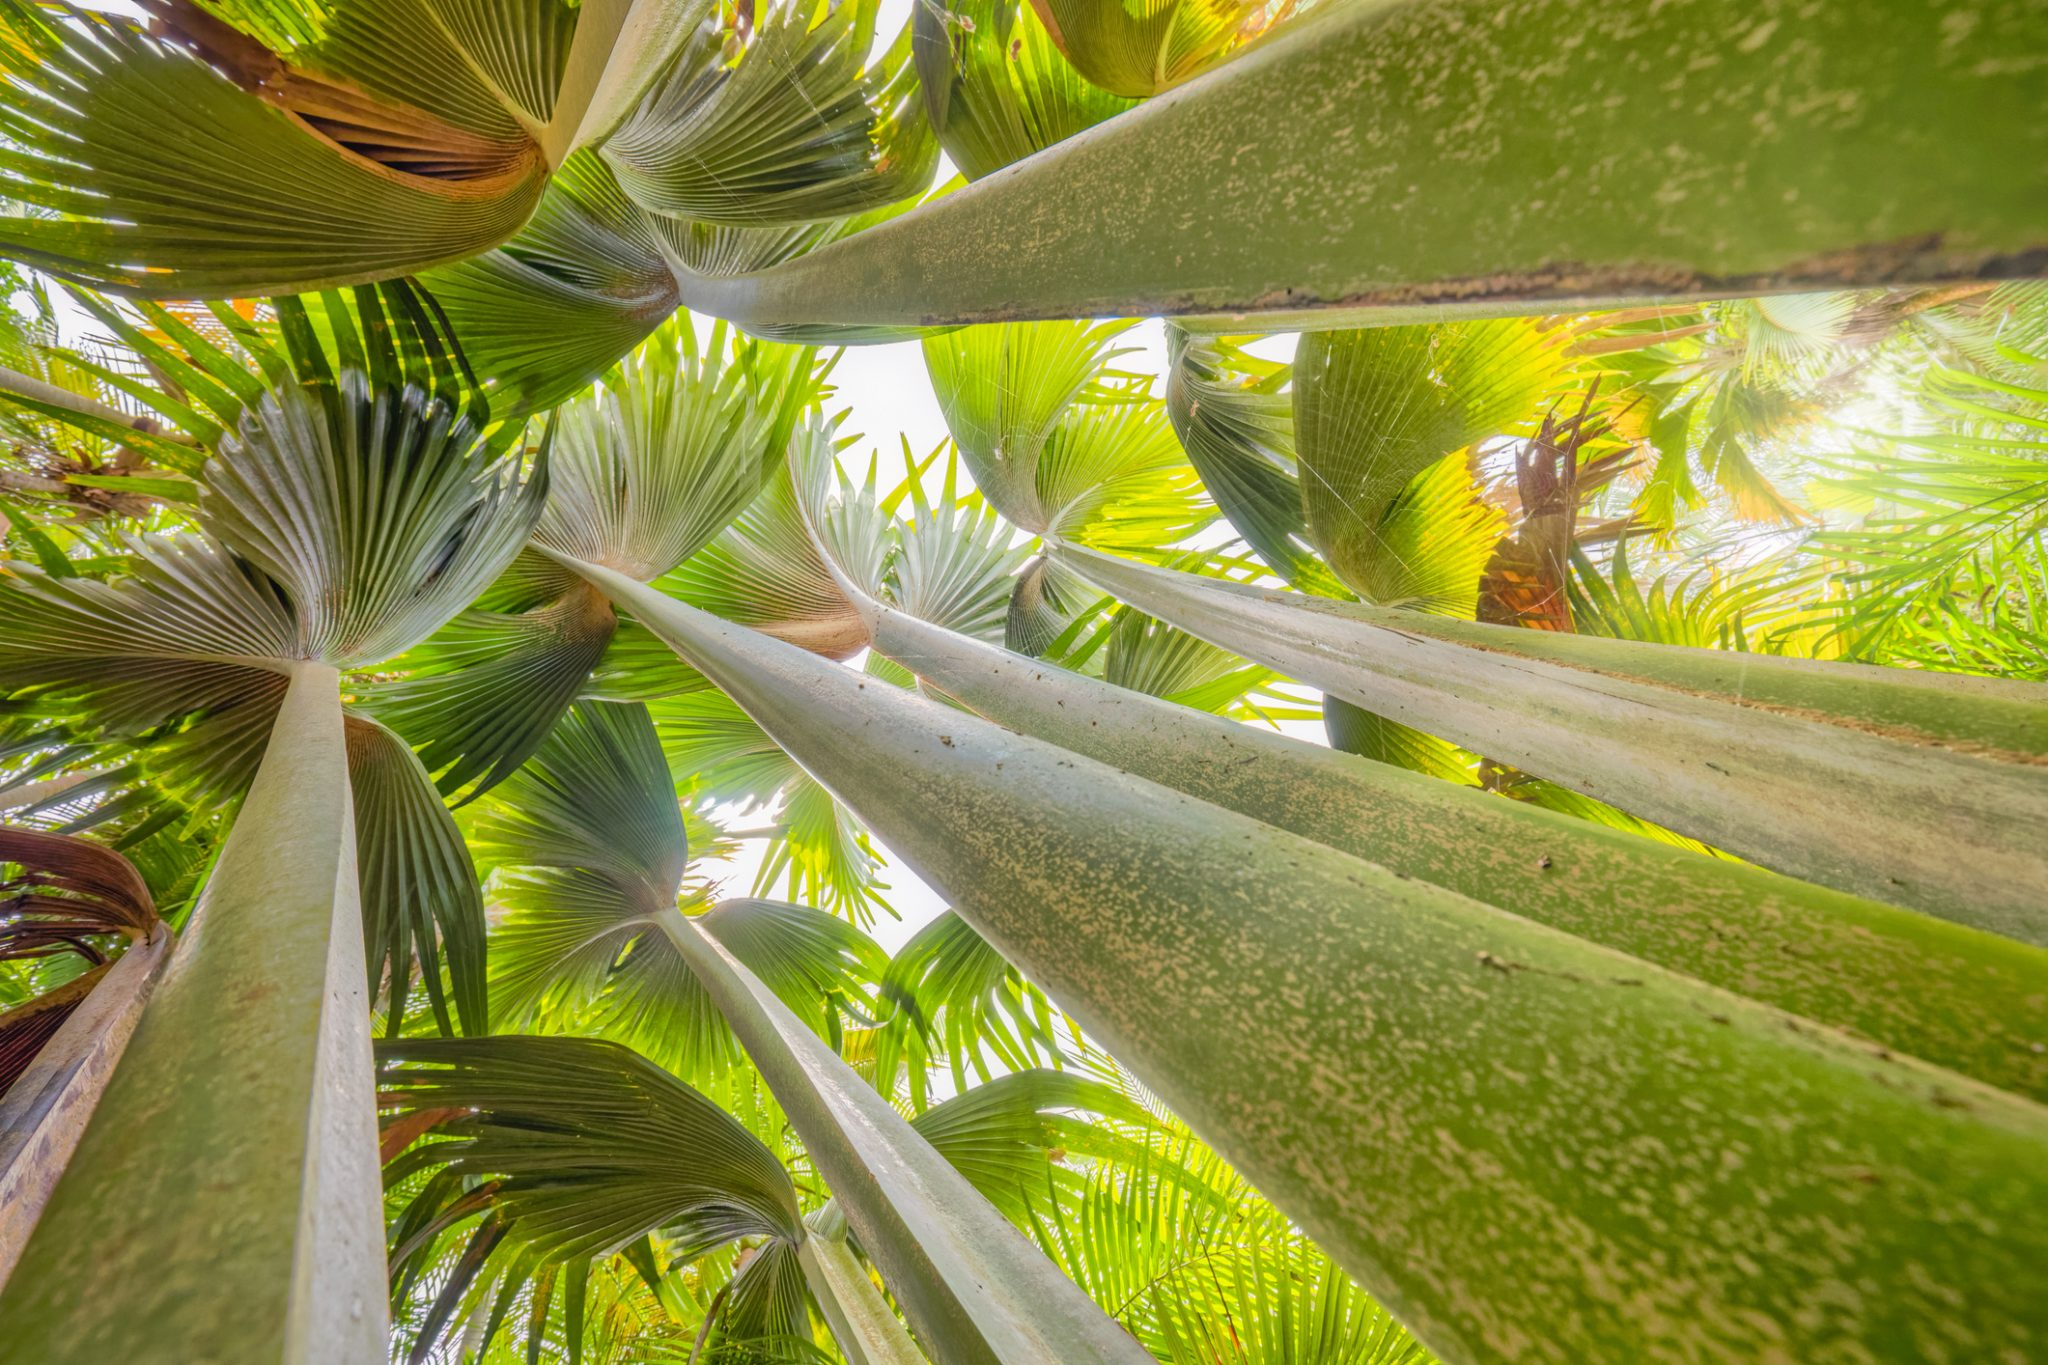 Abstract tropical fauna with palm tree